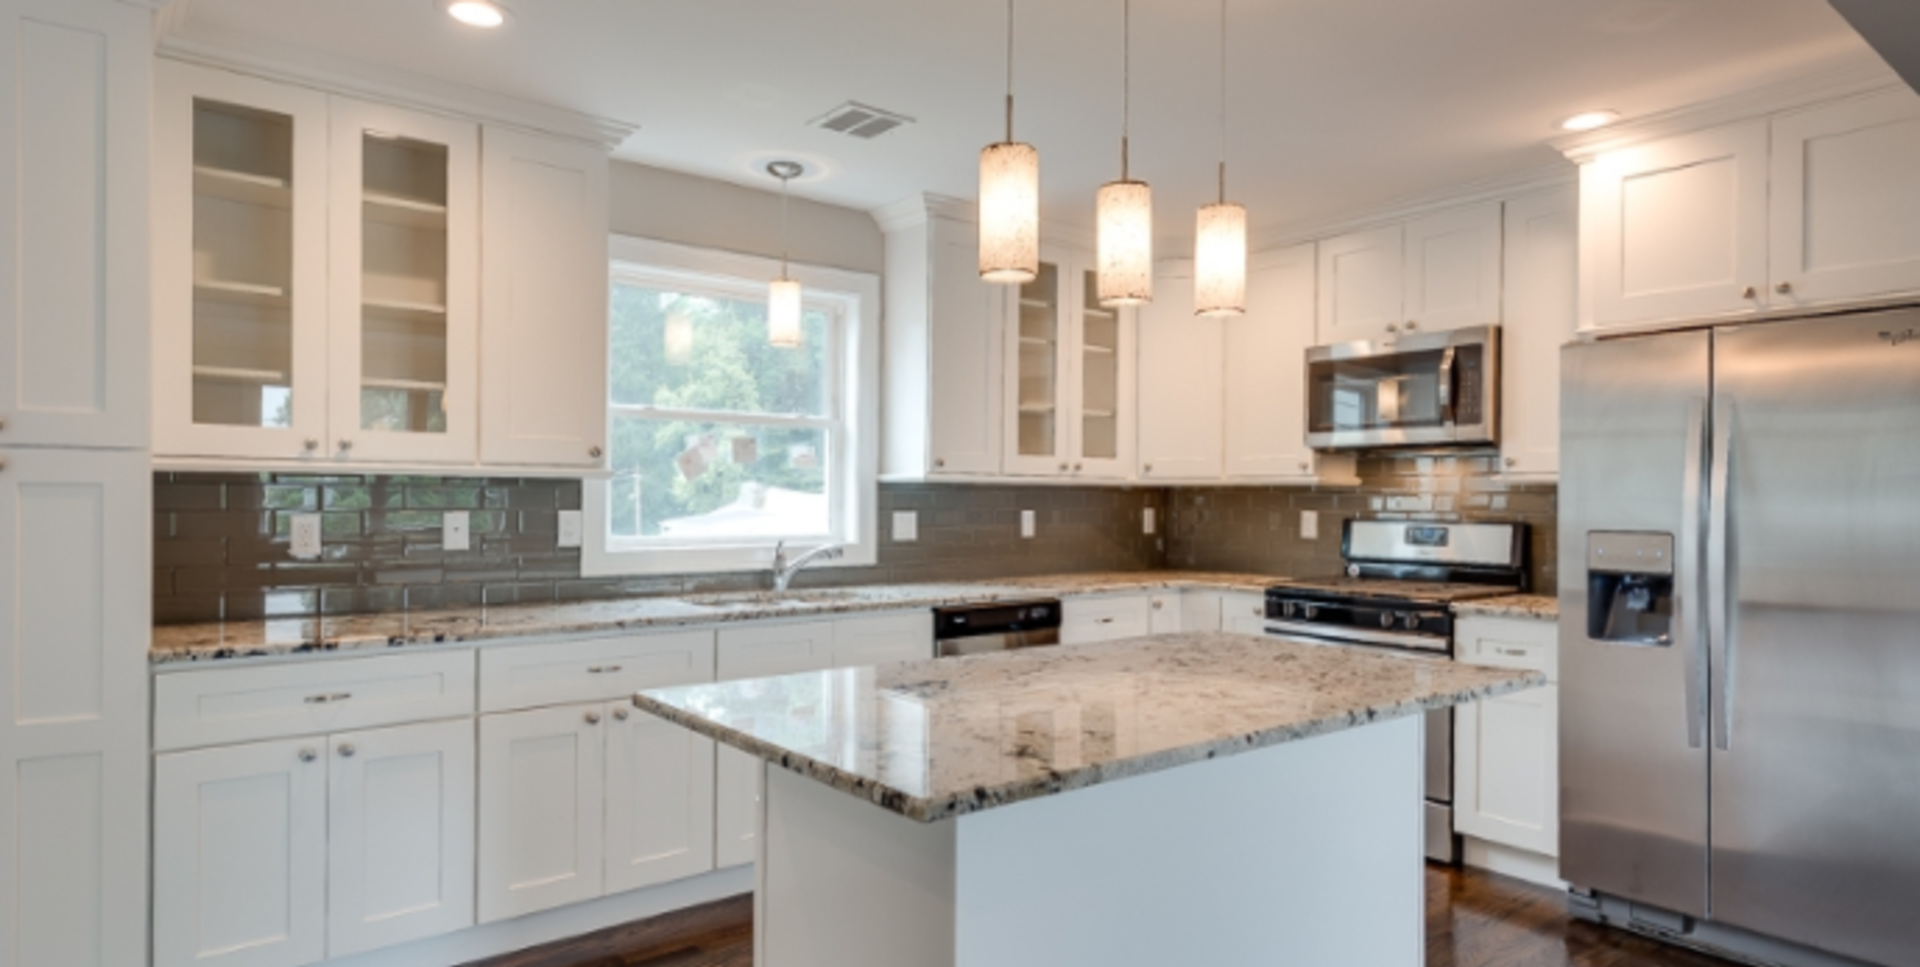 Hottest Luxury Listings in Morristown Town